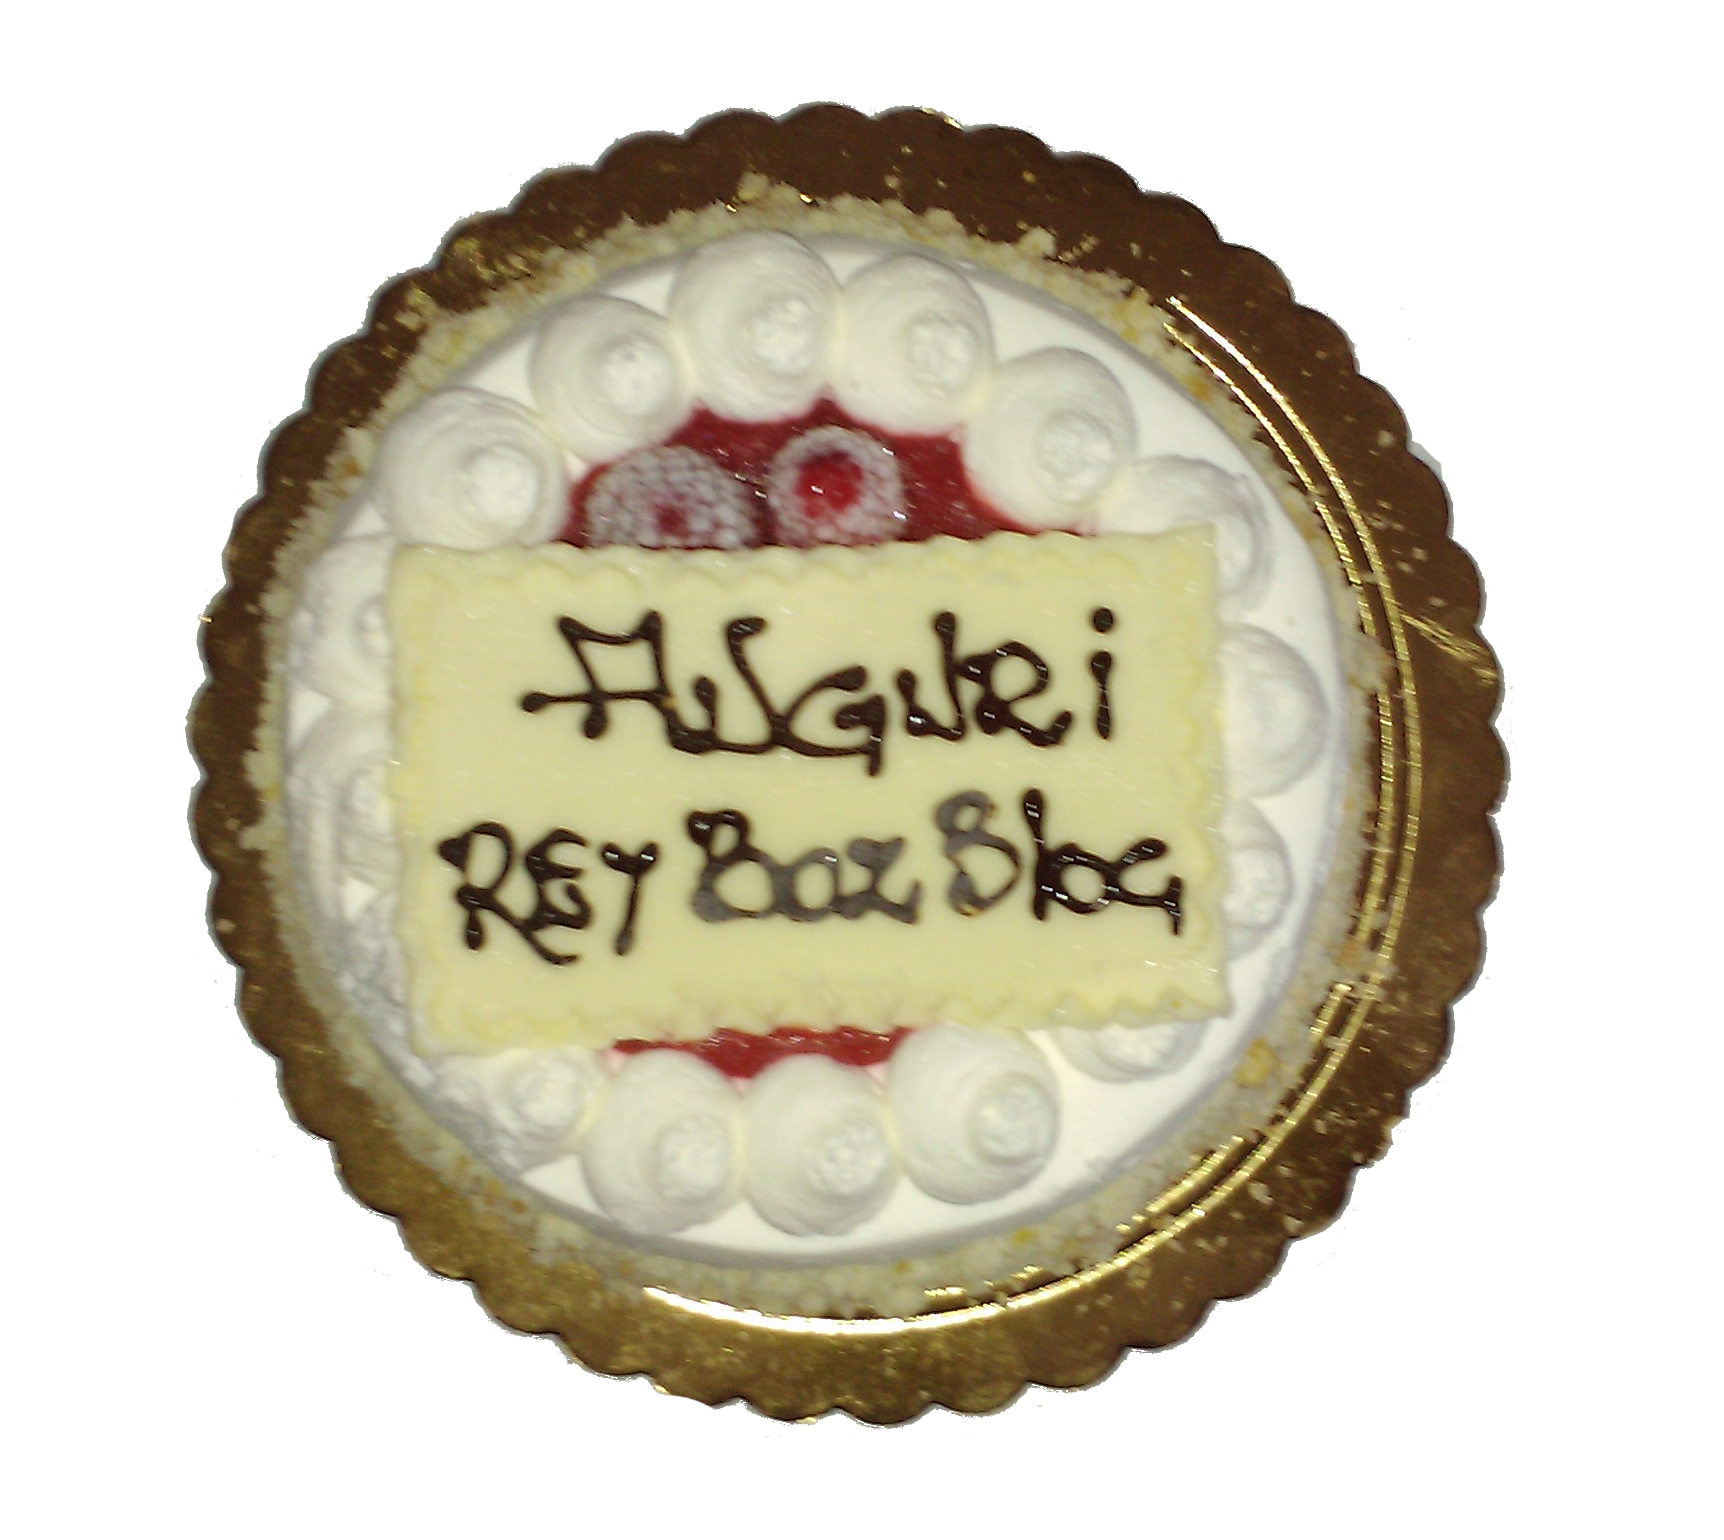 Buon compleanno Reyboz Blog!